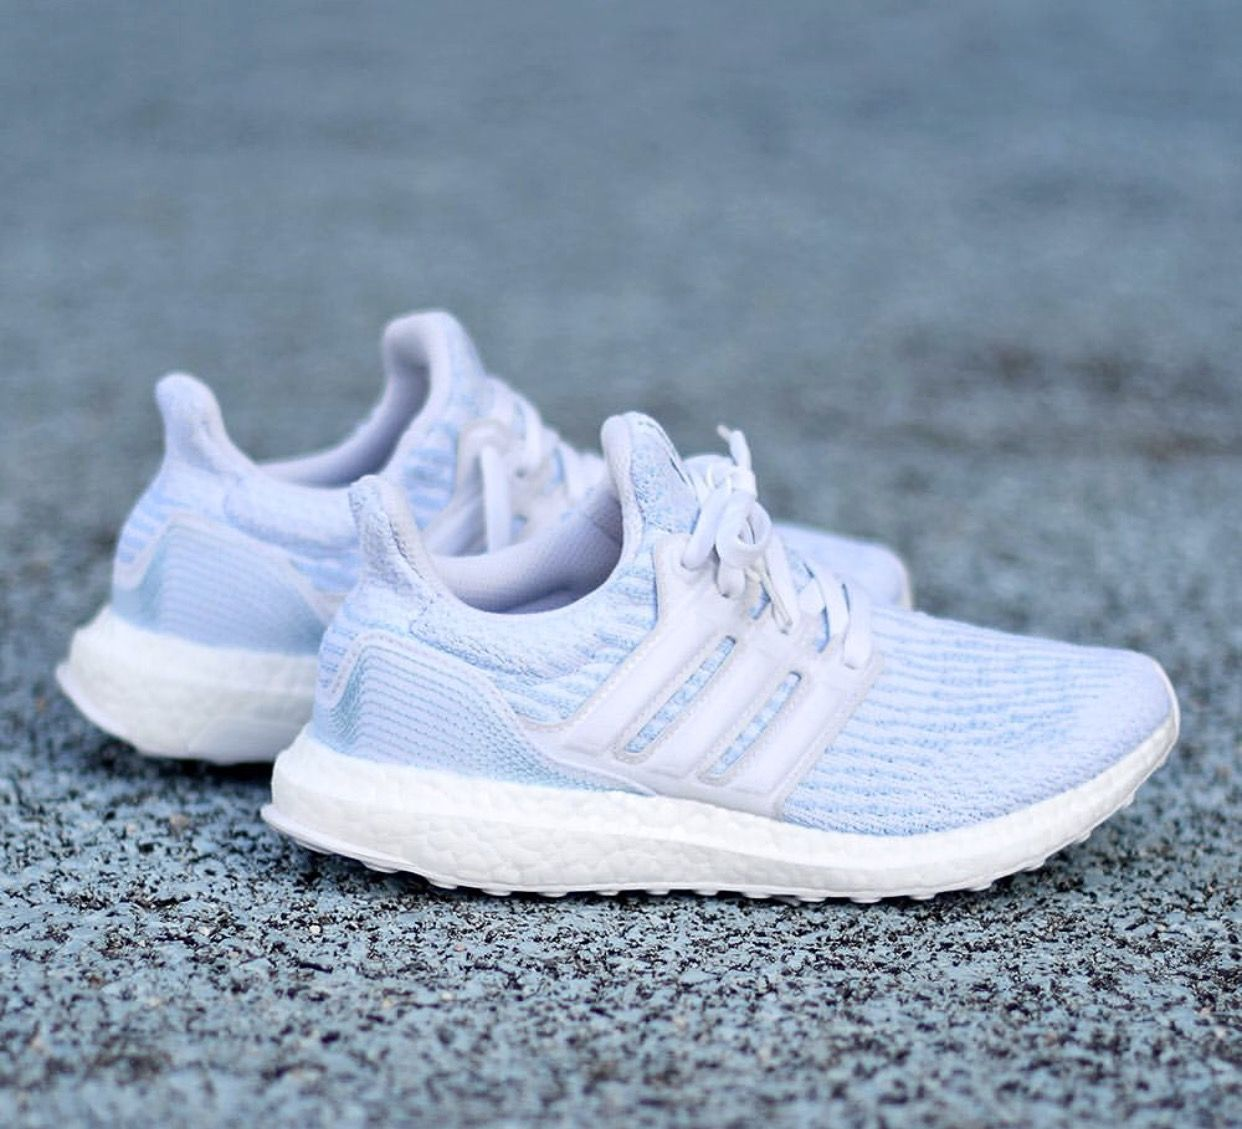 966a3ce676855 Made from 11 plastic bottles  recycled ocean waste. Adidas x Parley Ultra  Boost 3.0. Release date not yet confirmed.